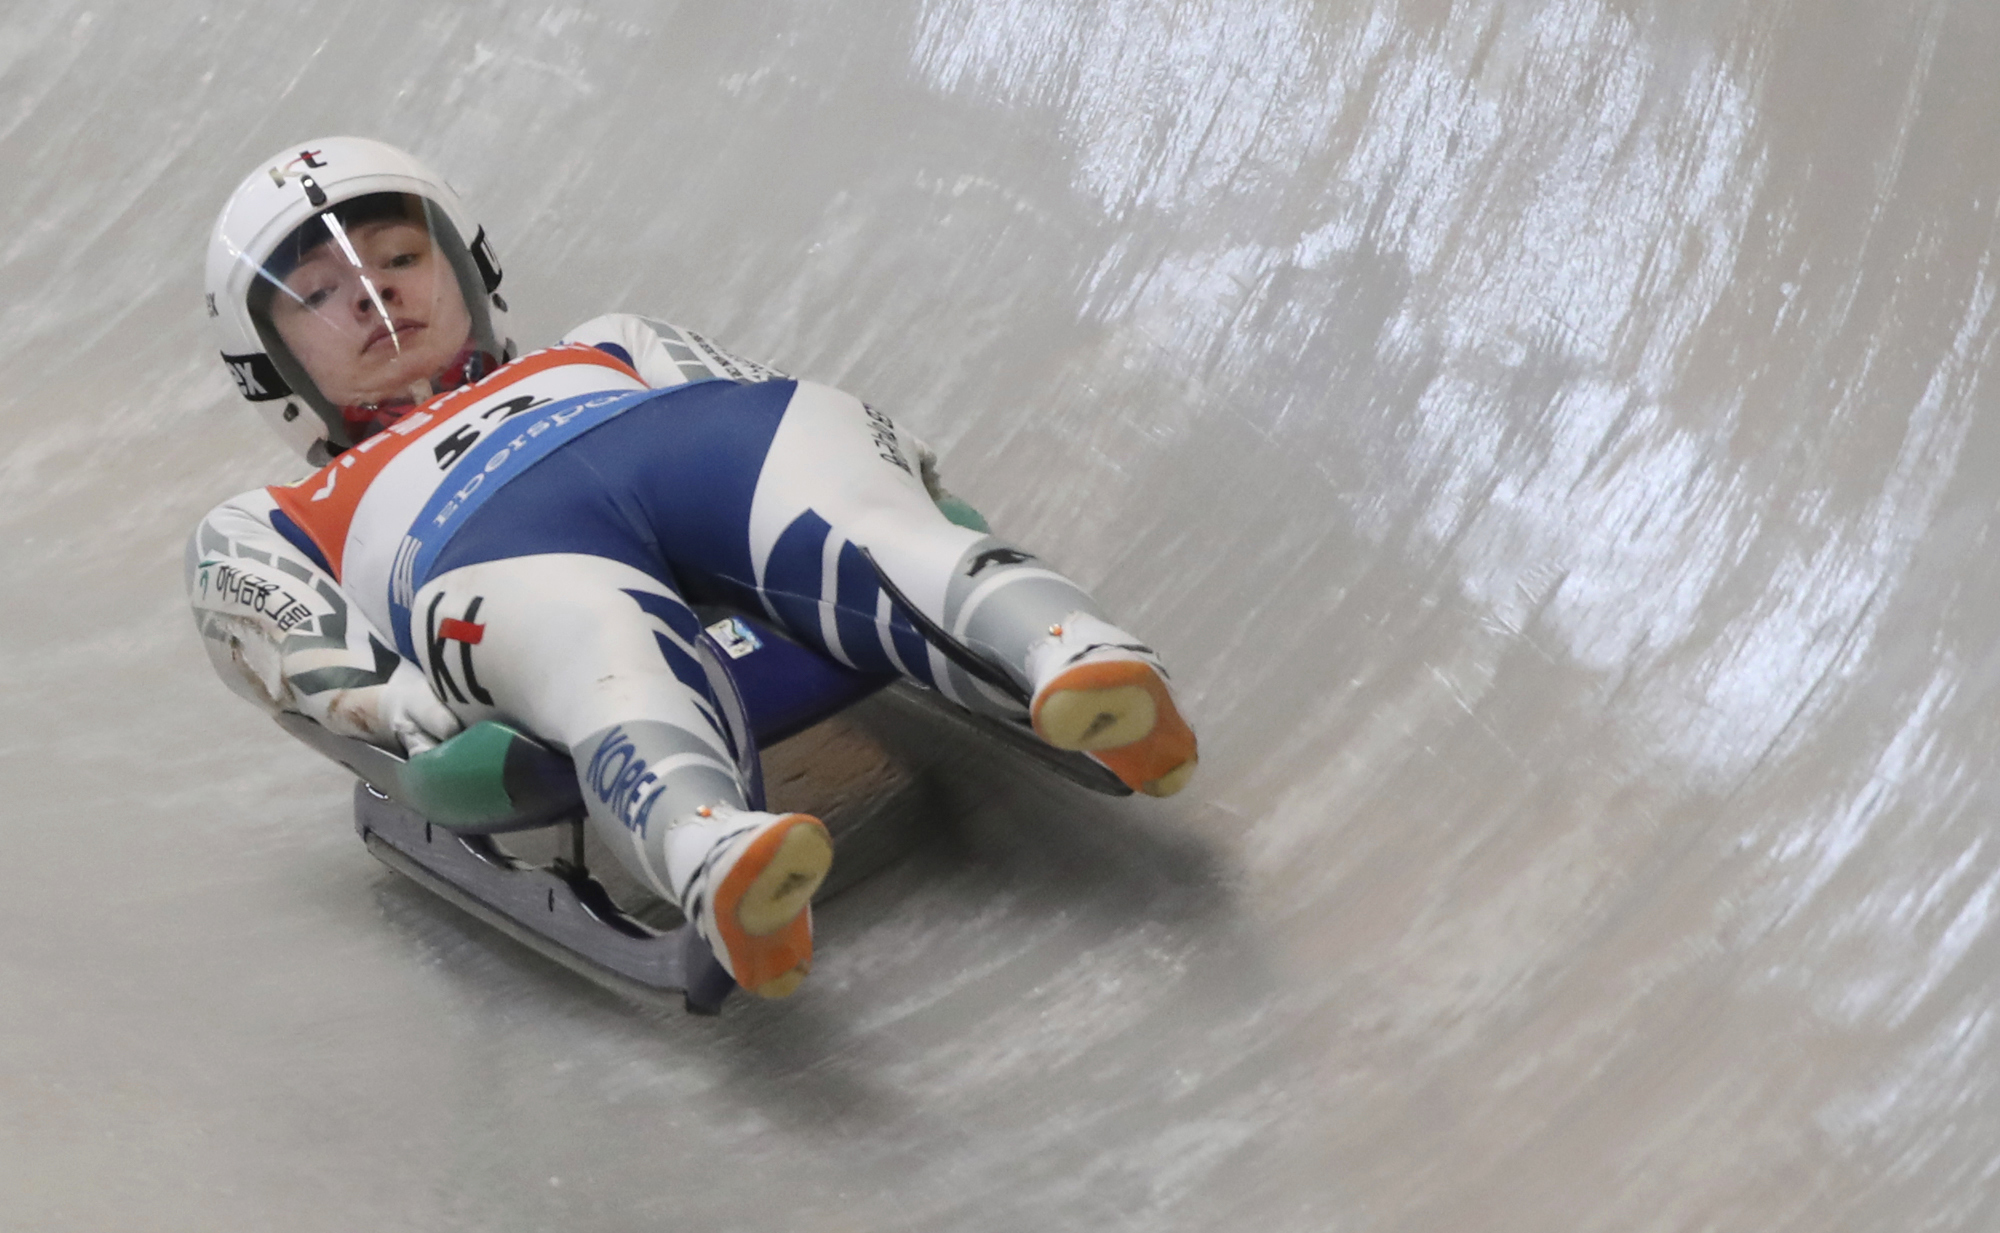 In this Thursday, Feb. 16, 2017 photo, naturalized luge athlete Aileen Frisch speeds down the track during the official training for the Luge World Cup competition at the Alpensia Sliding Centre in Pyeongchang, South Korea. South Korea has recruited forei